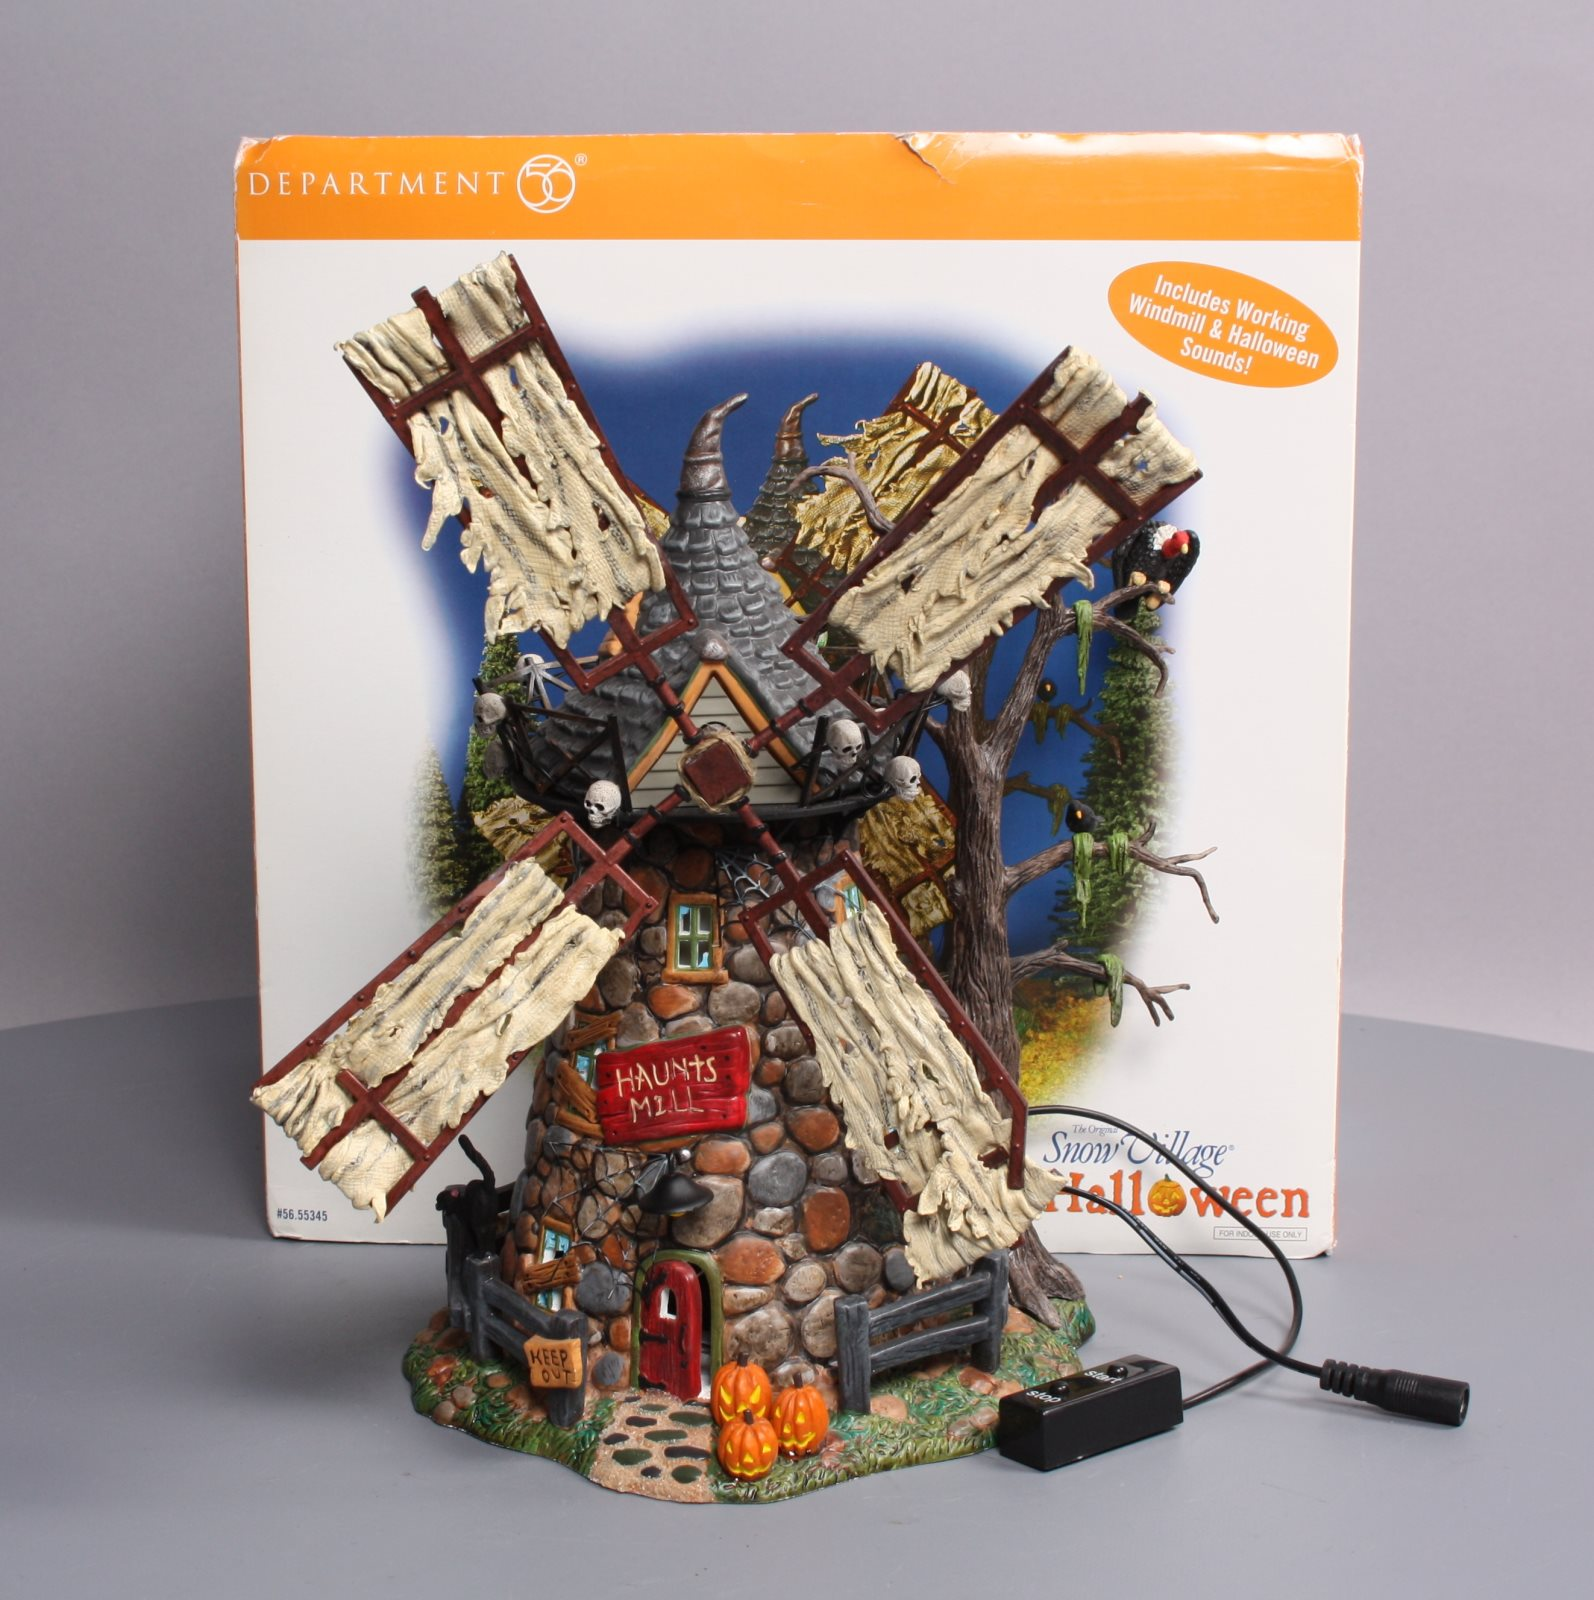 snow village halloween haunted windmill lnbox dept 56 55345 zoom photo from seller